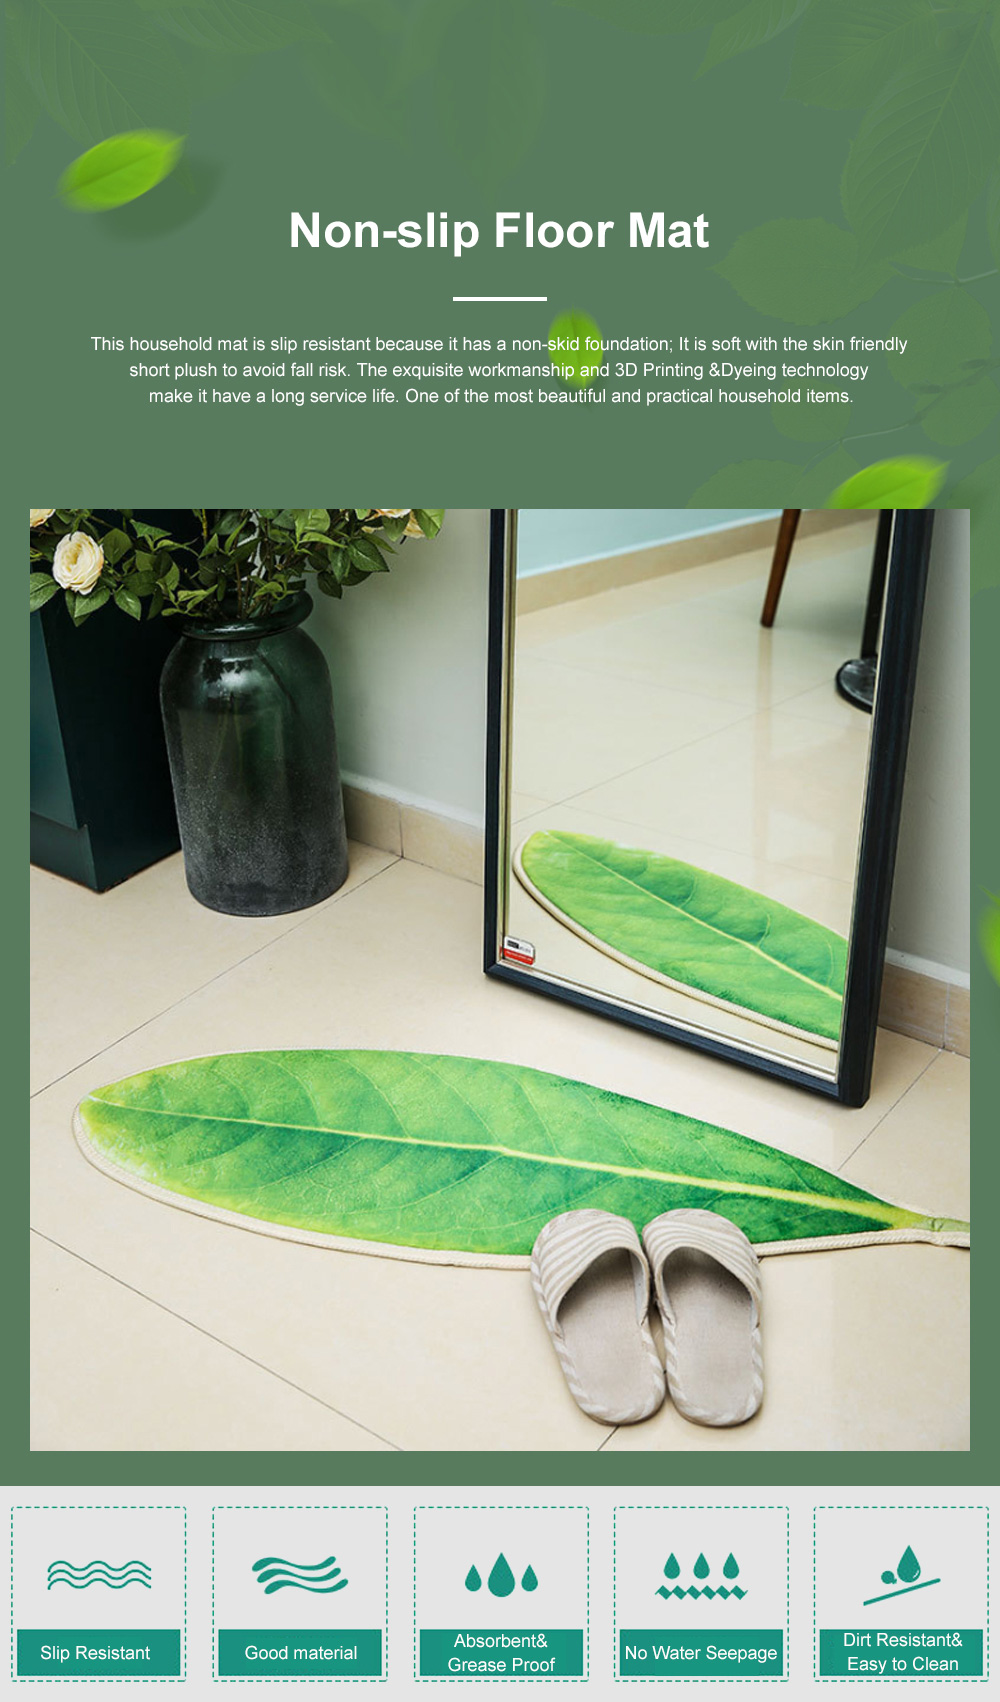 Non-slip Floor Mat for Home Bedroom Bedside Area Rugs Green with Soft Plush Anti-slip Bedroom Floor Rug 0